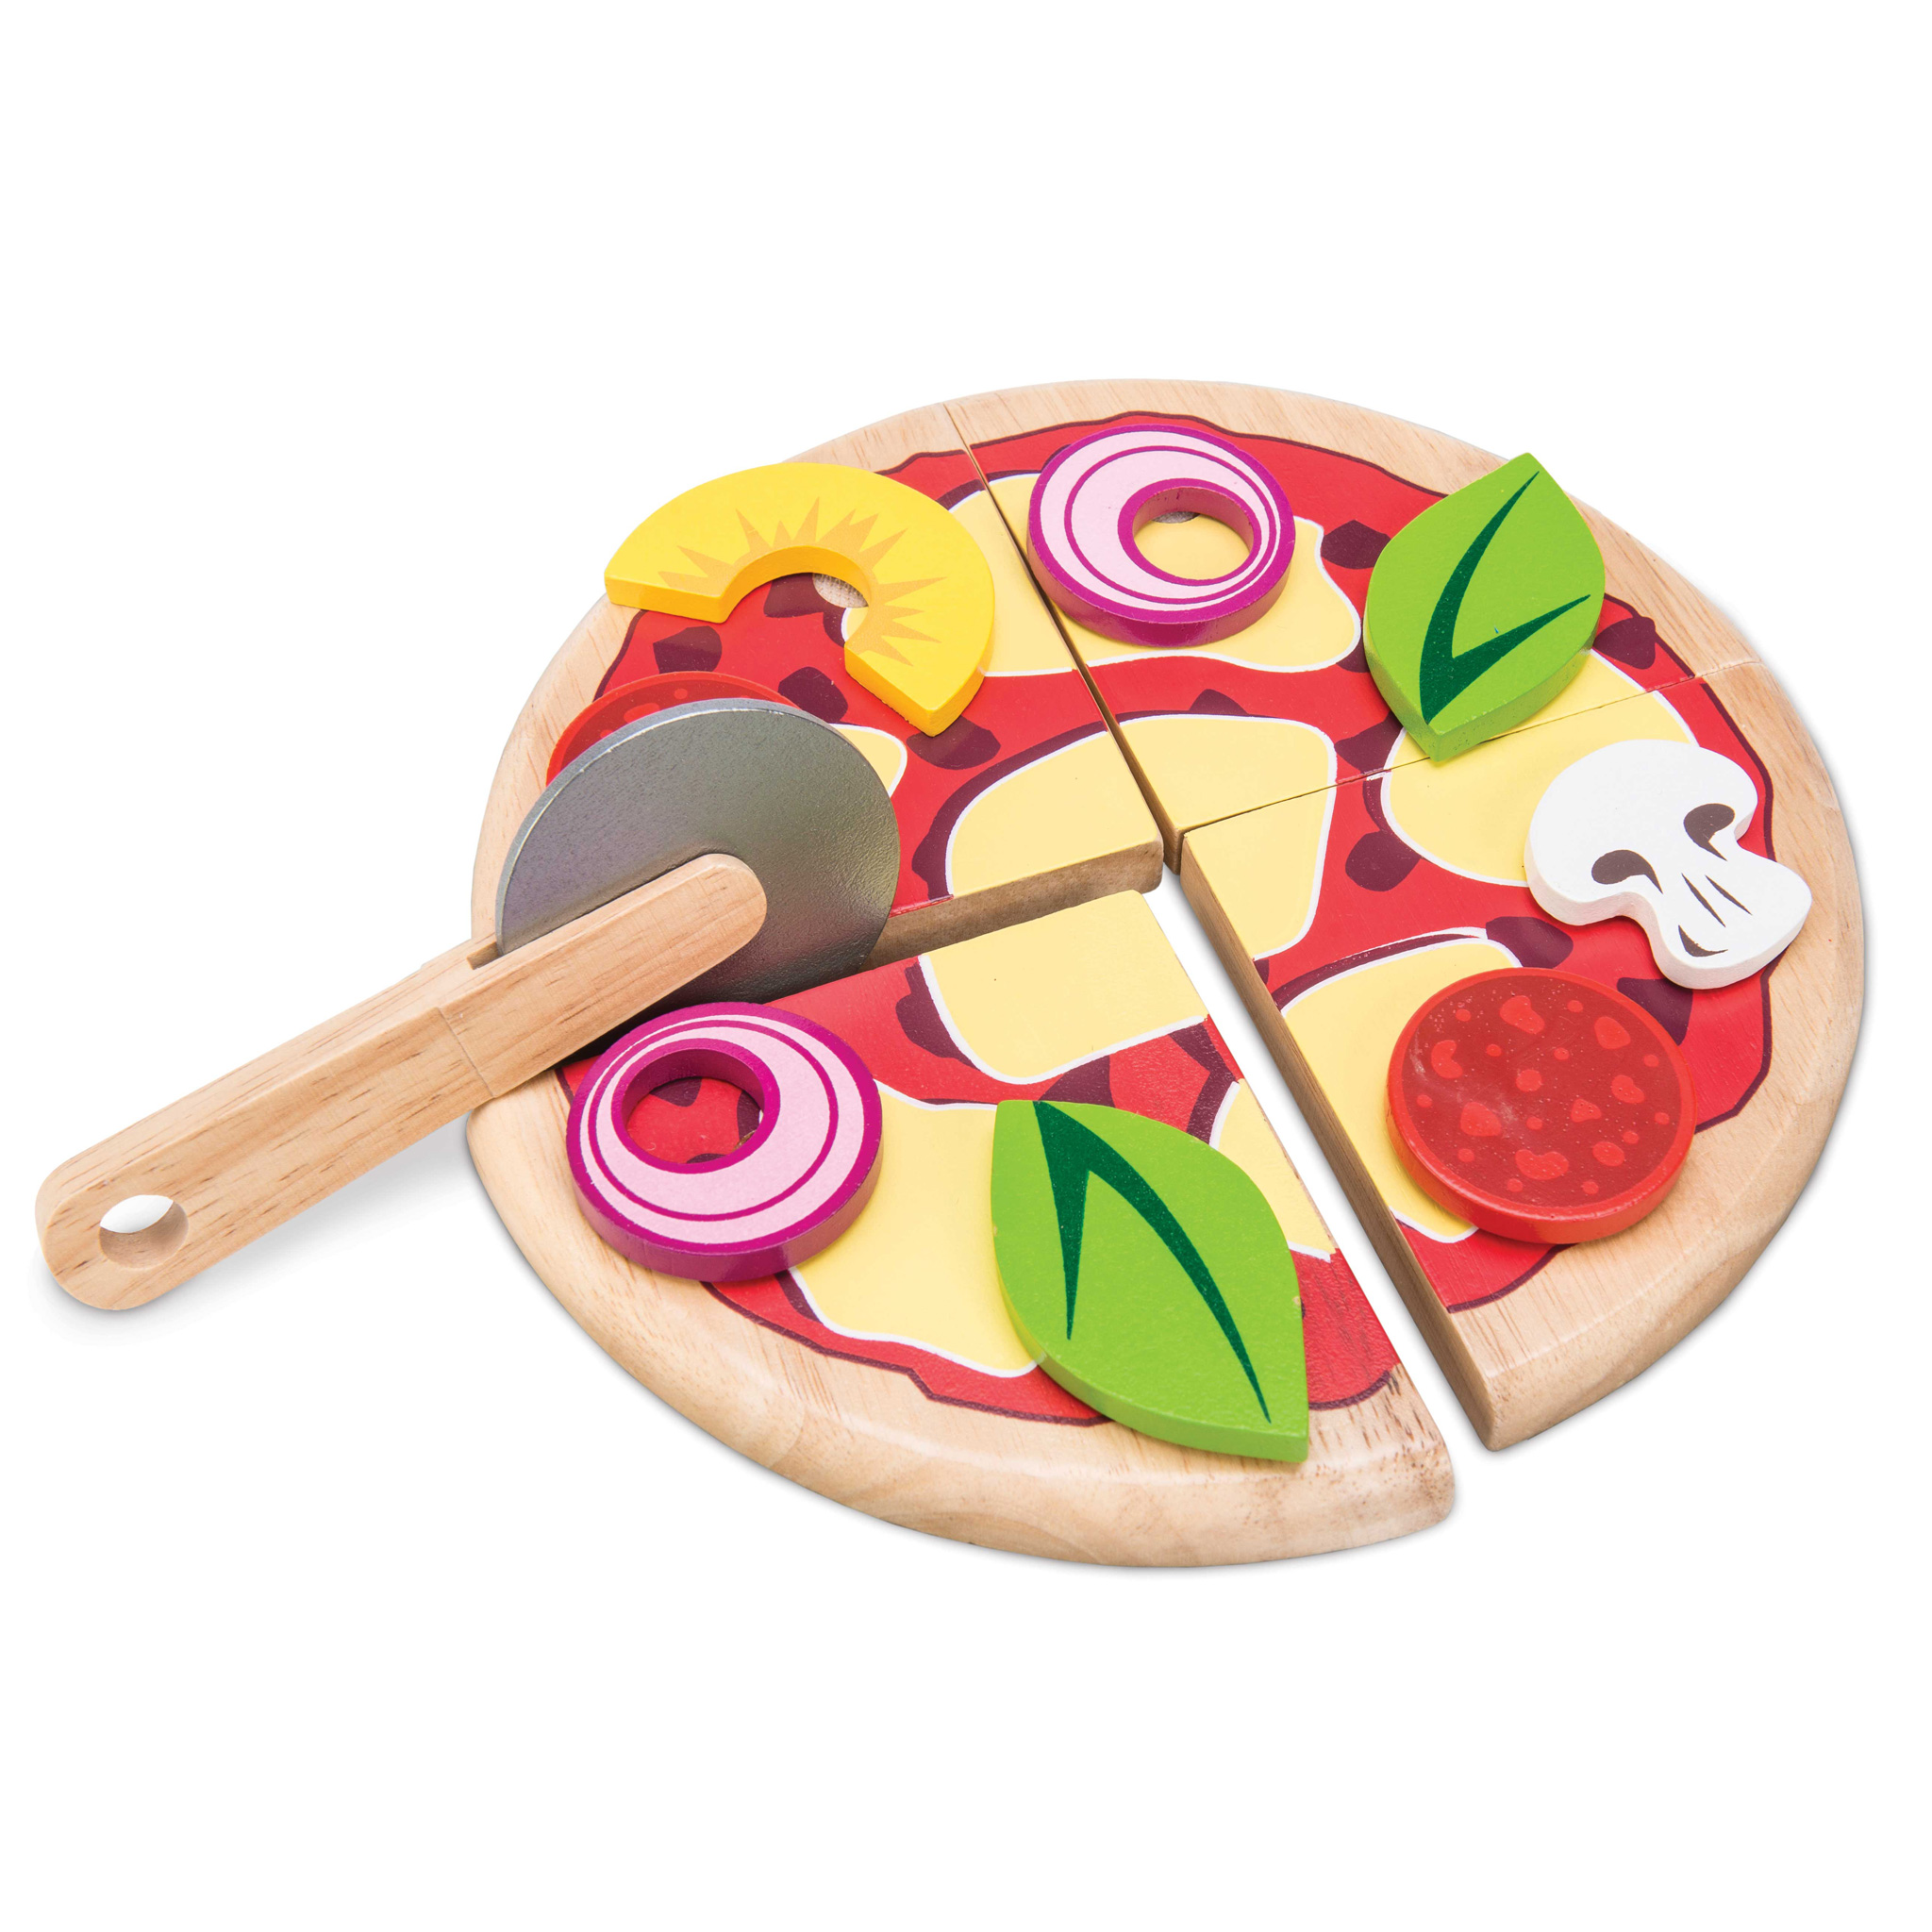 Le Toy Van Honeybake Create Your Own Pizza